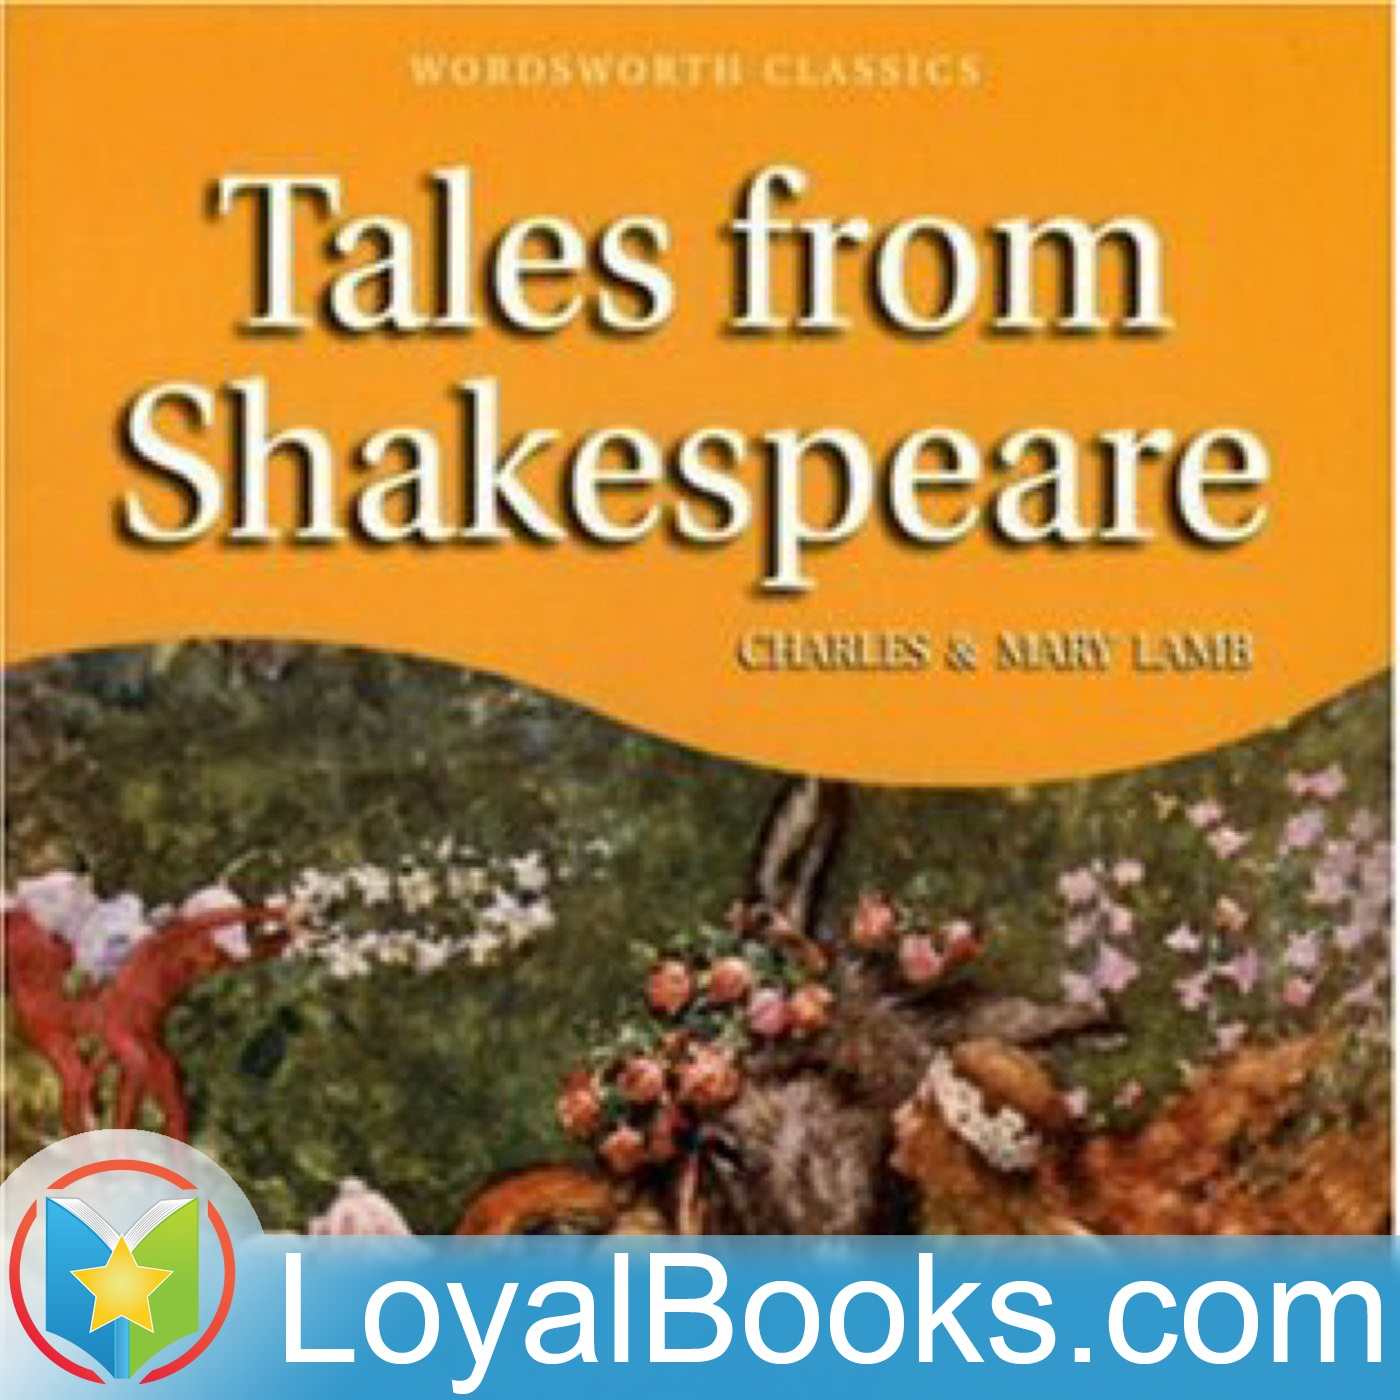 <![CDATA[Tales from Shakespeare by Charles Lamb]]>